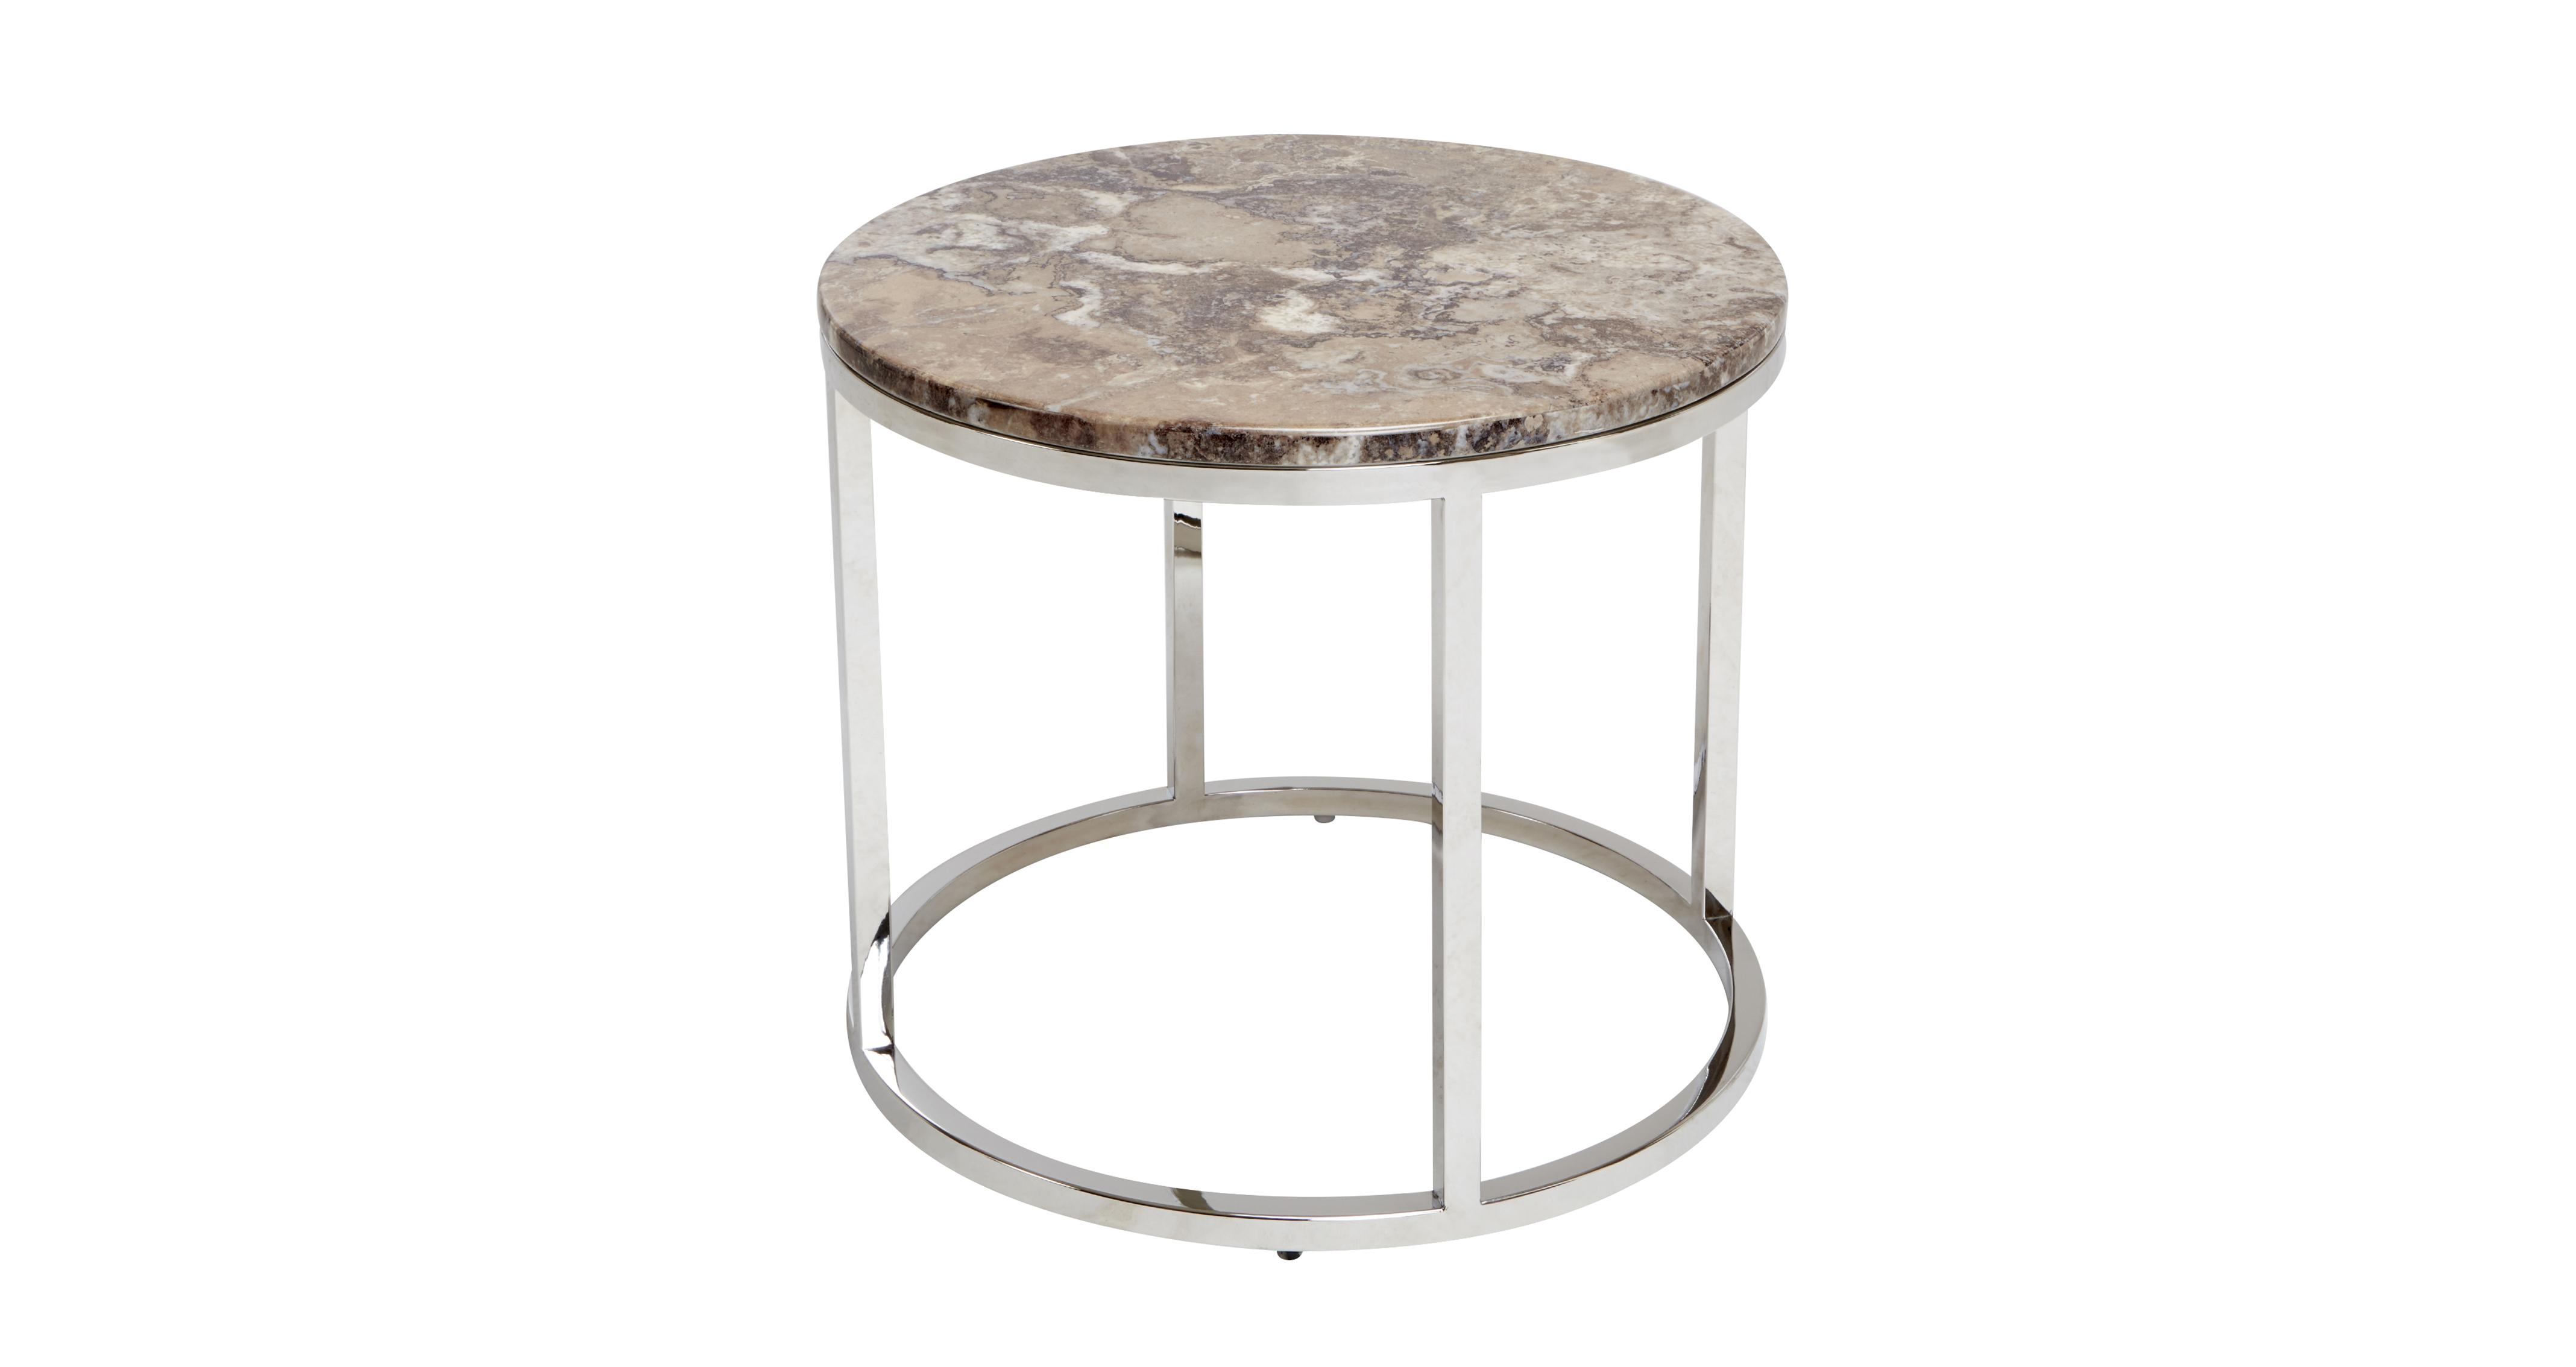 Espresso lamp table dfs for Lamp table dfs